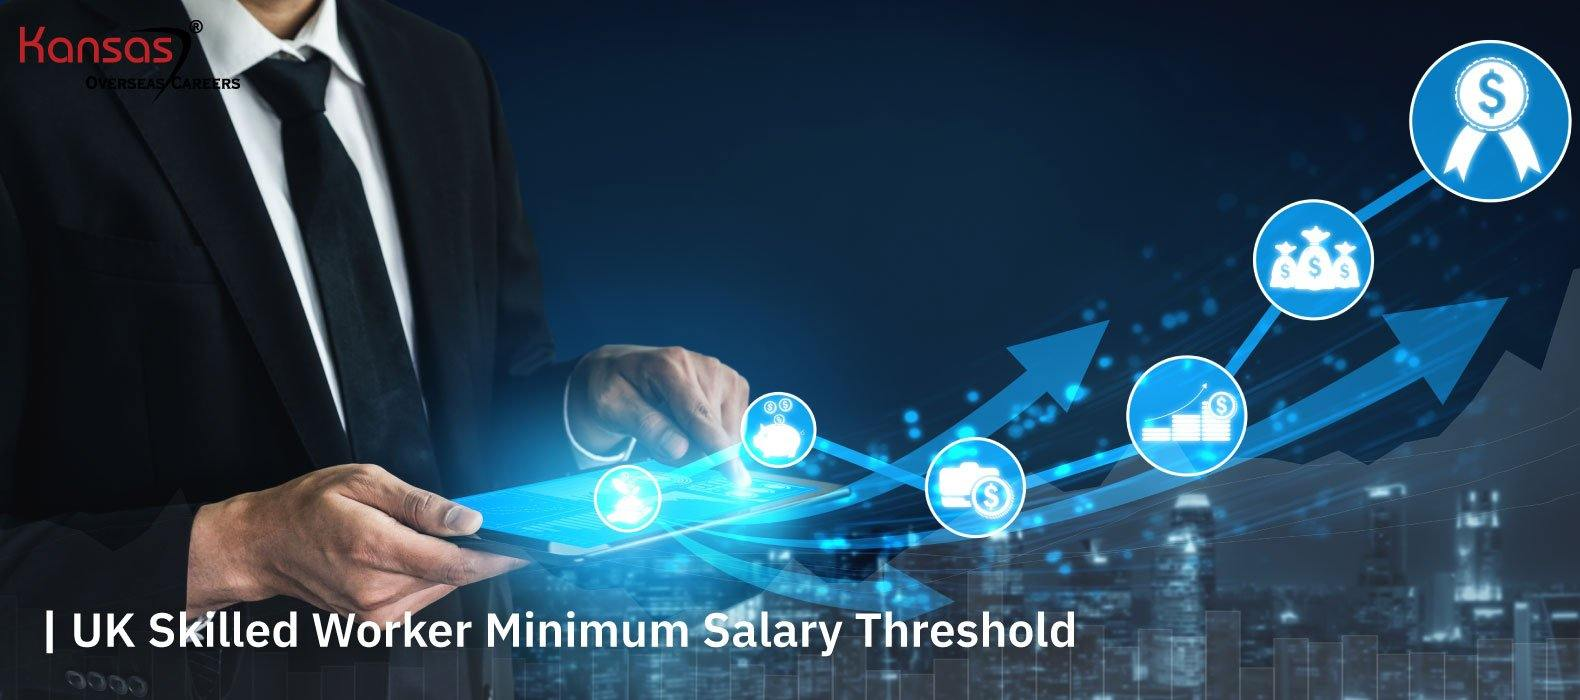 A-job-must-meet-the-'Minimum-Salary-Threshold'-or-the-'Going-Rate'